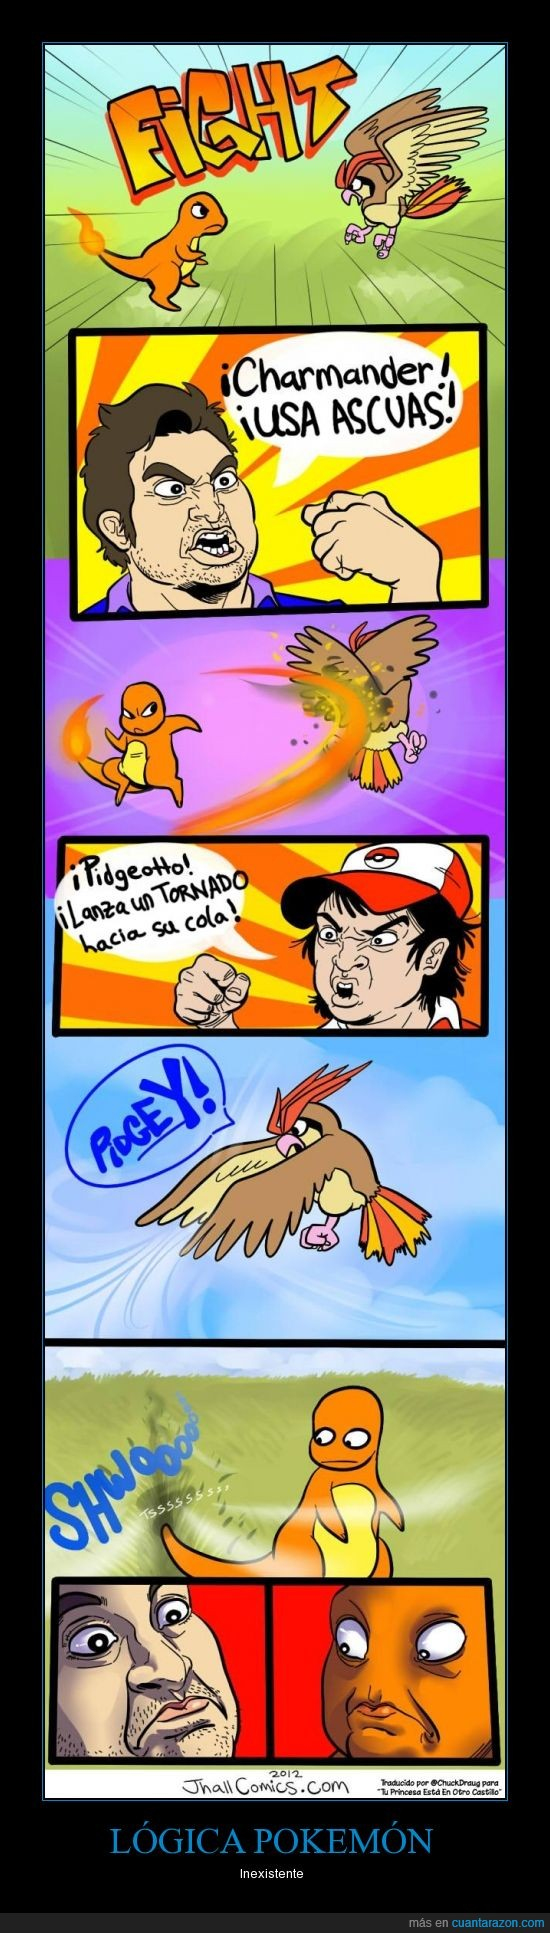 aire,apagar,charmander,cola,fail,fuego,logica,Pokemon